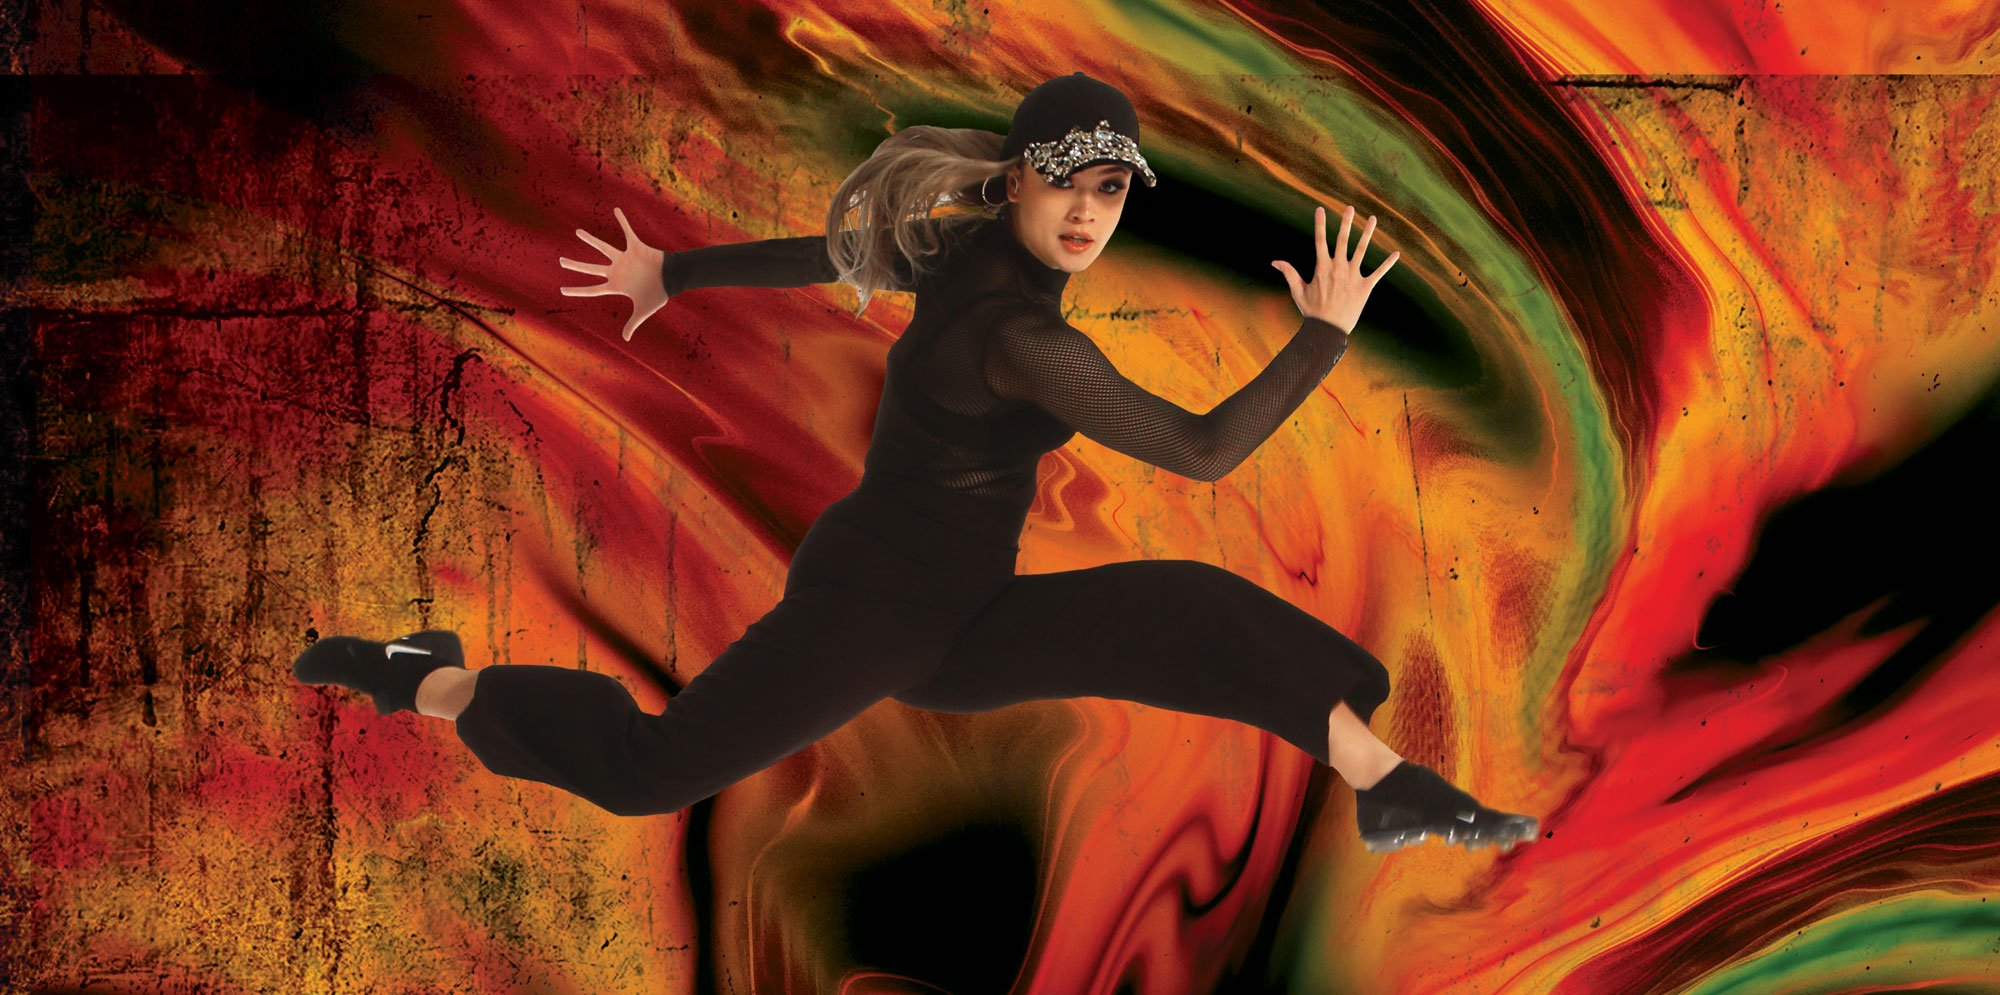 a woman in black clothes and a sparkling baseball hat lunge-jumps in front of a swirling red-yellow background